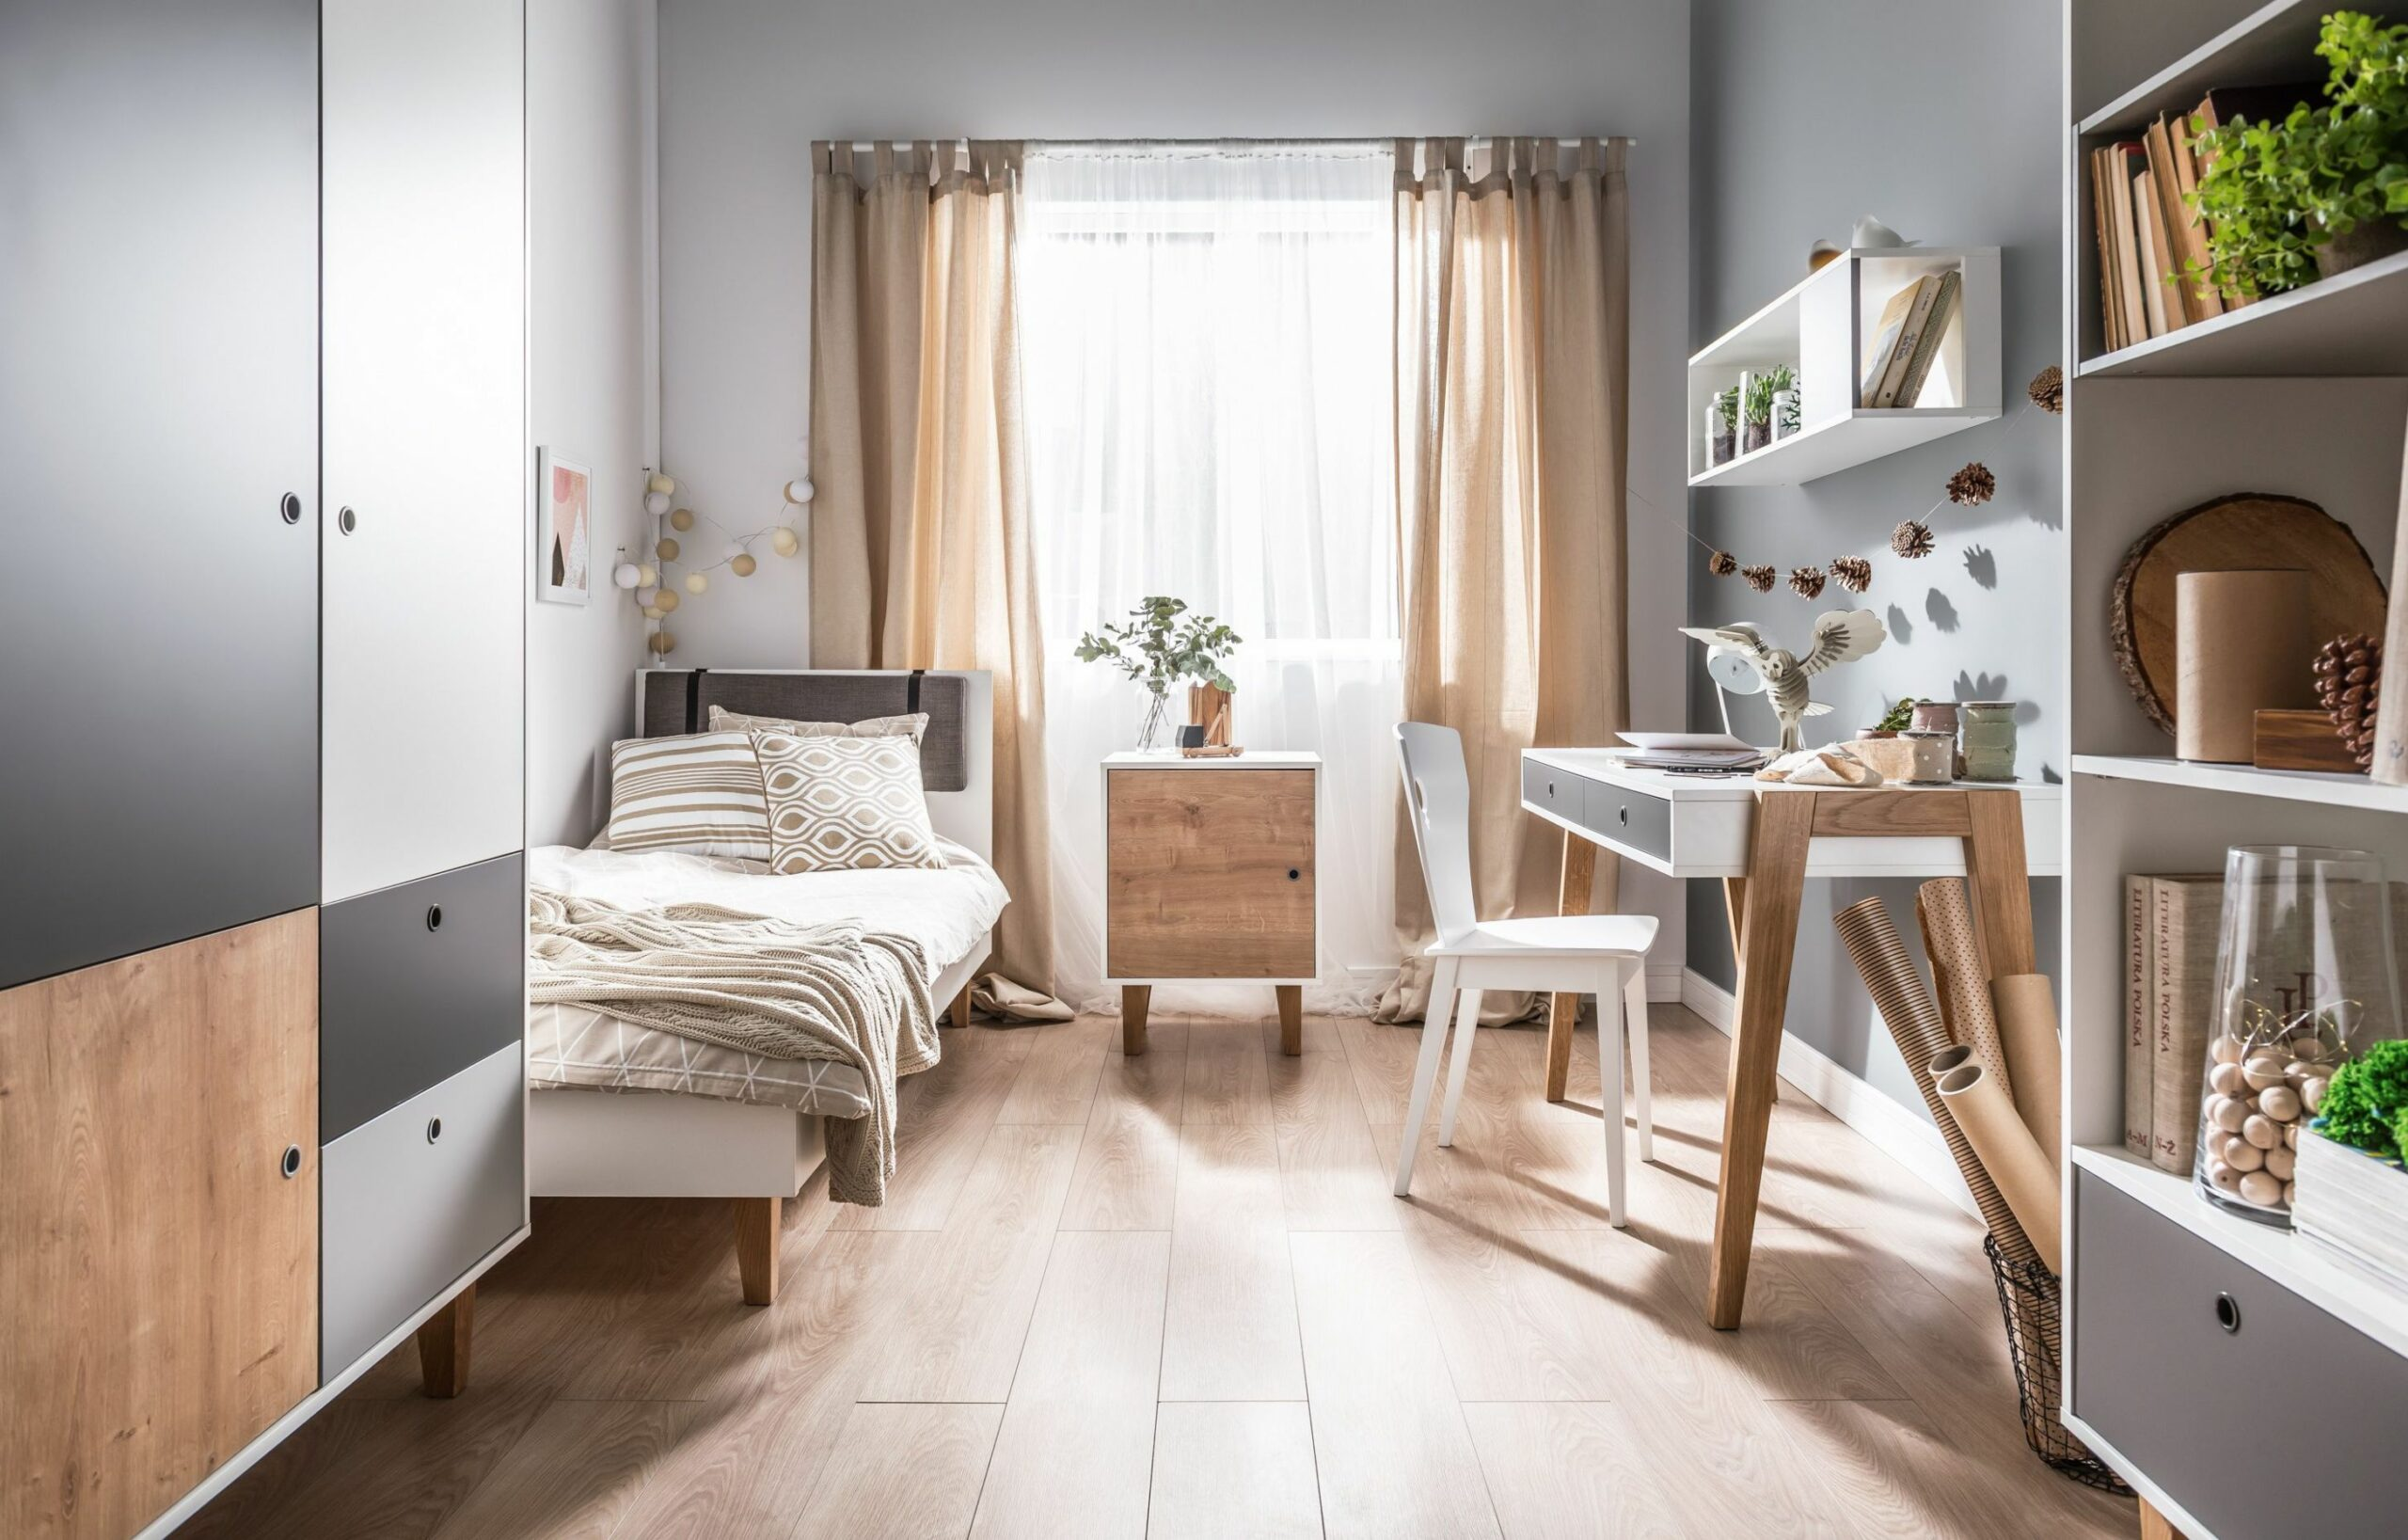 12 Small Bedroom Ideas To Fall In Love With – Small Bedroom ...